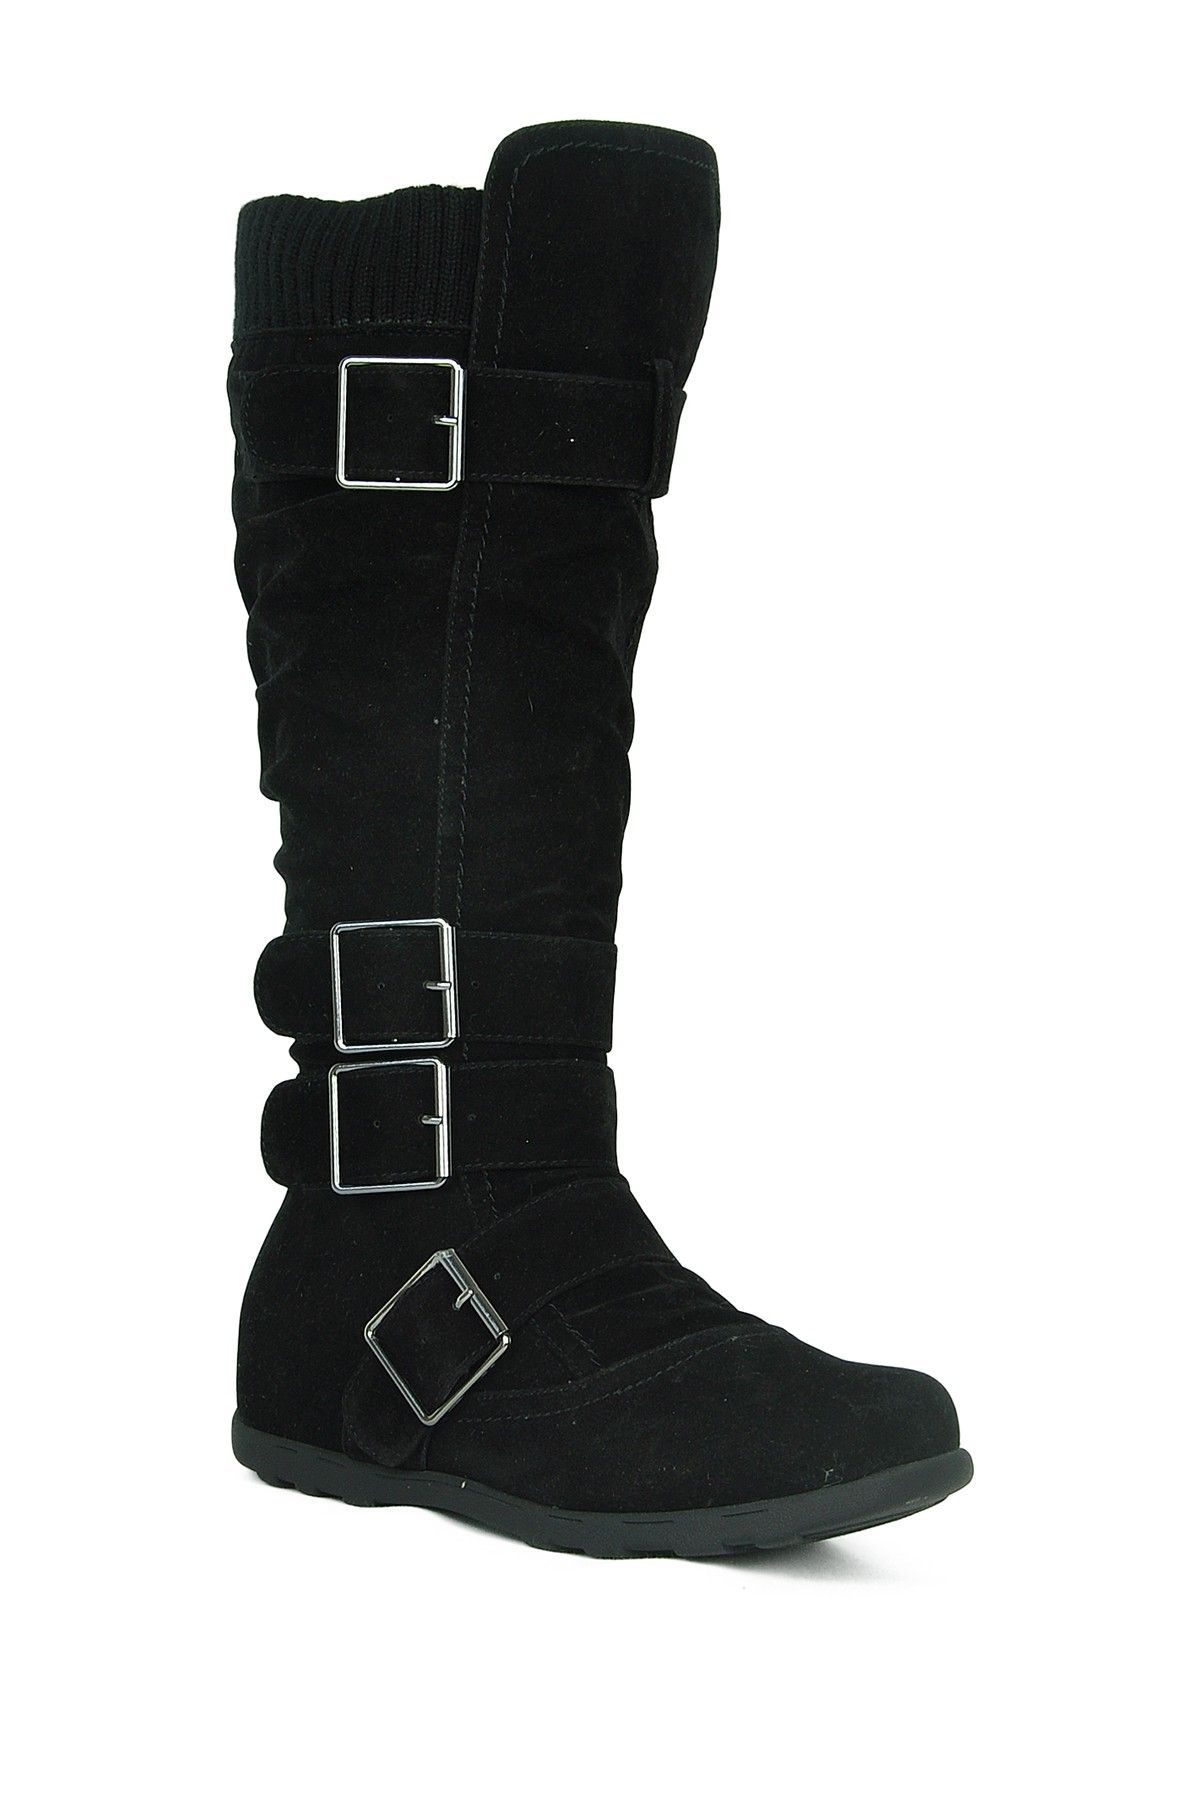 Refresh | Elma Buckle High Boot | Boots, Sweater boots, Knee